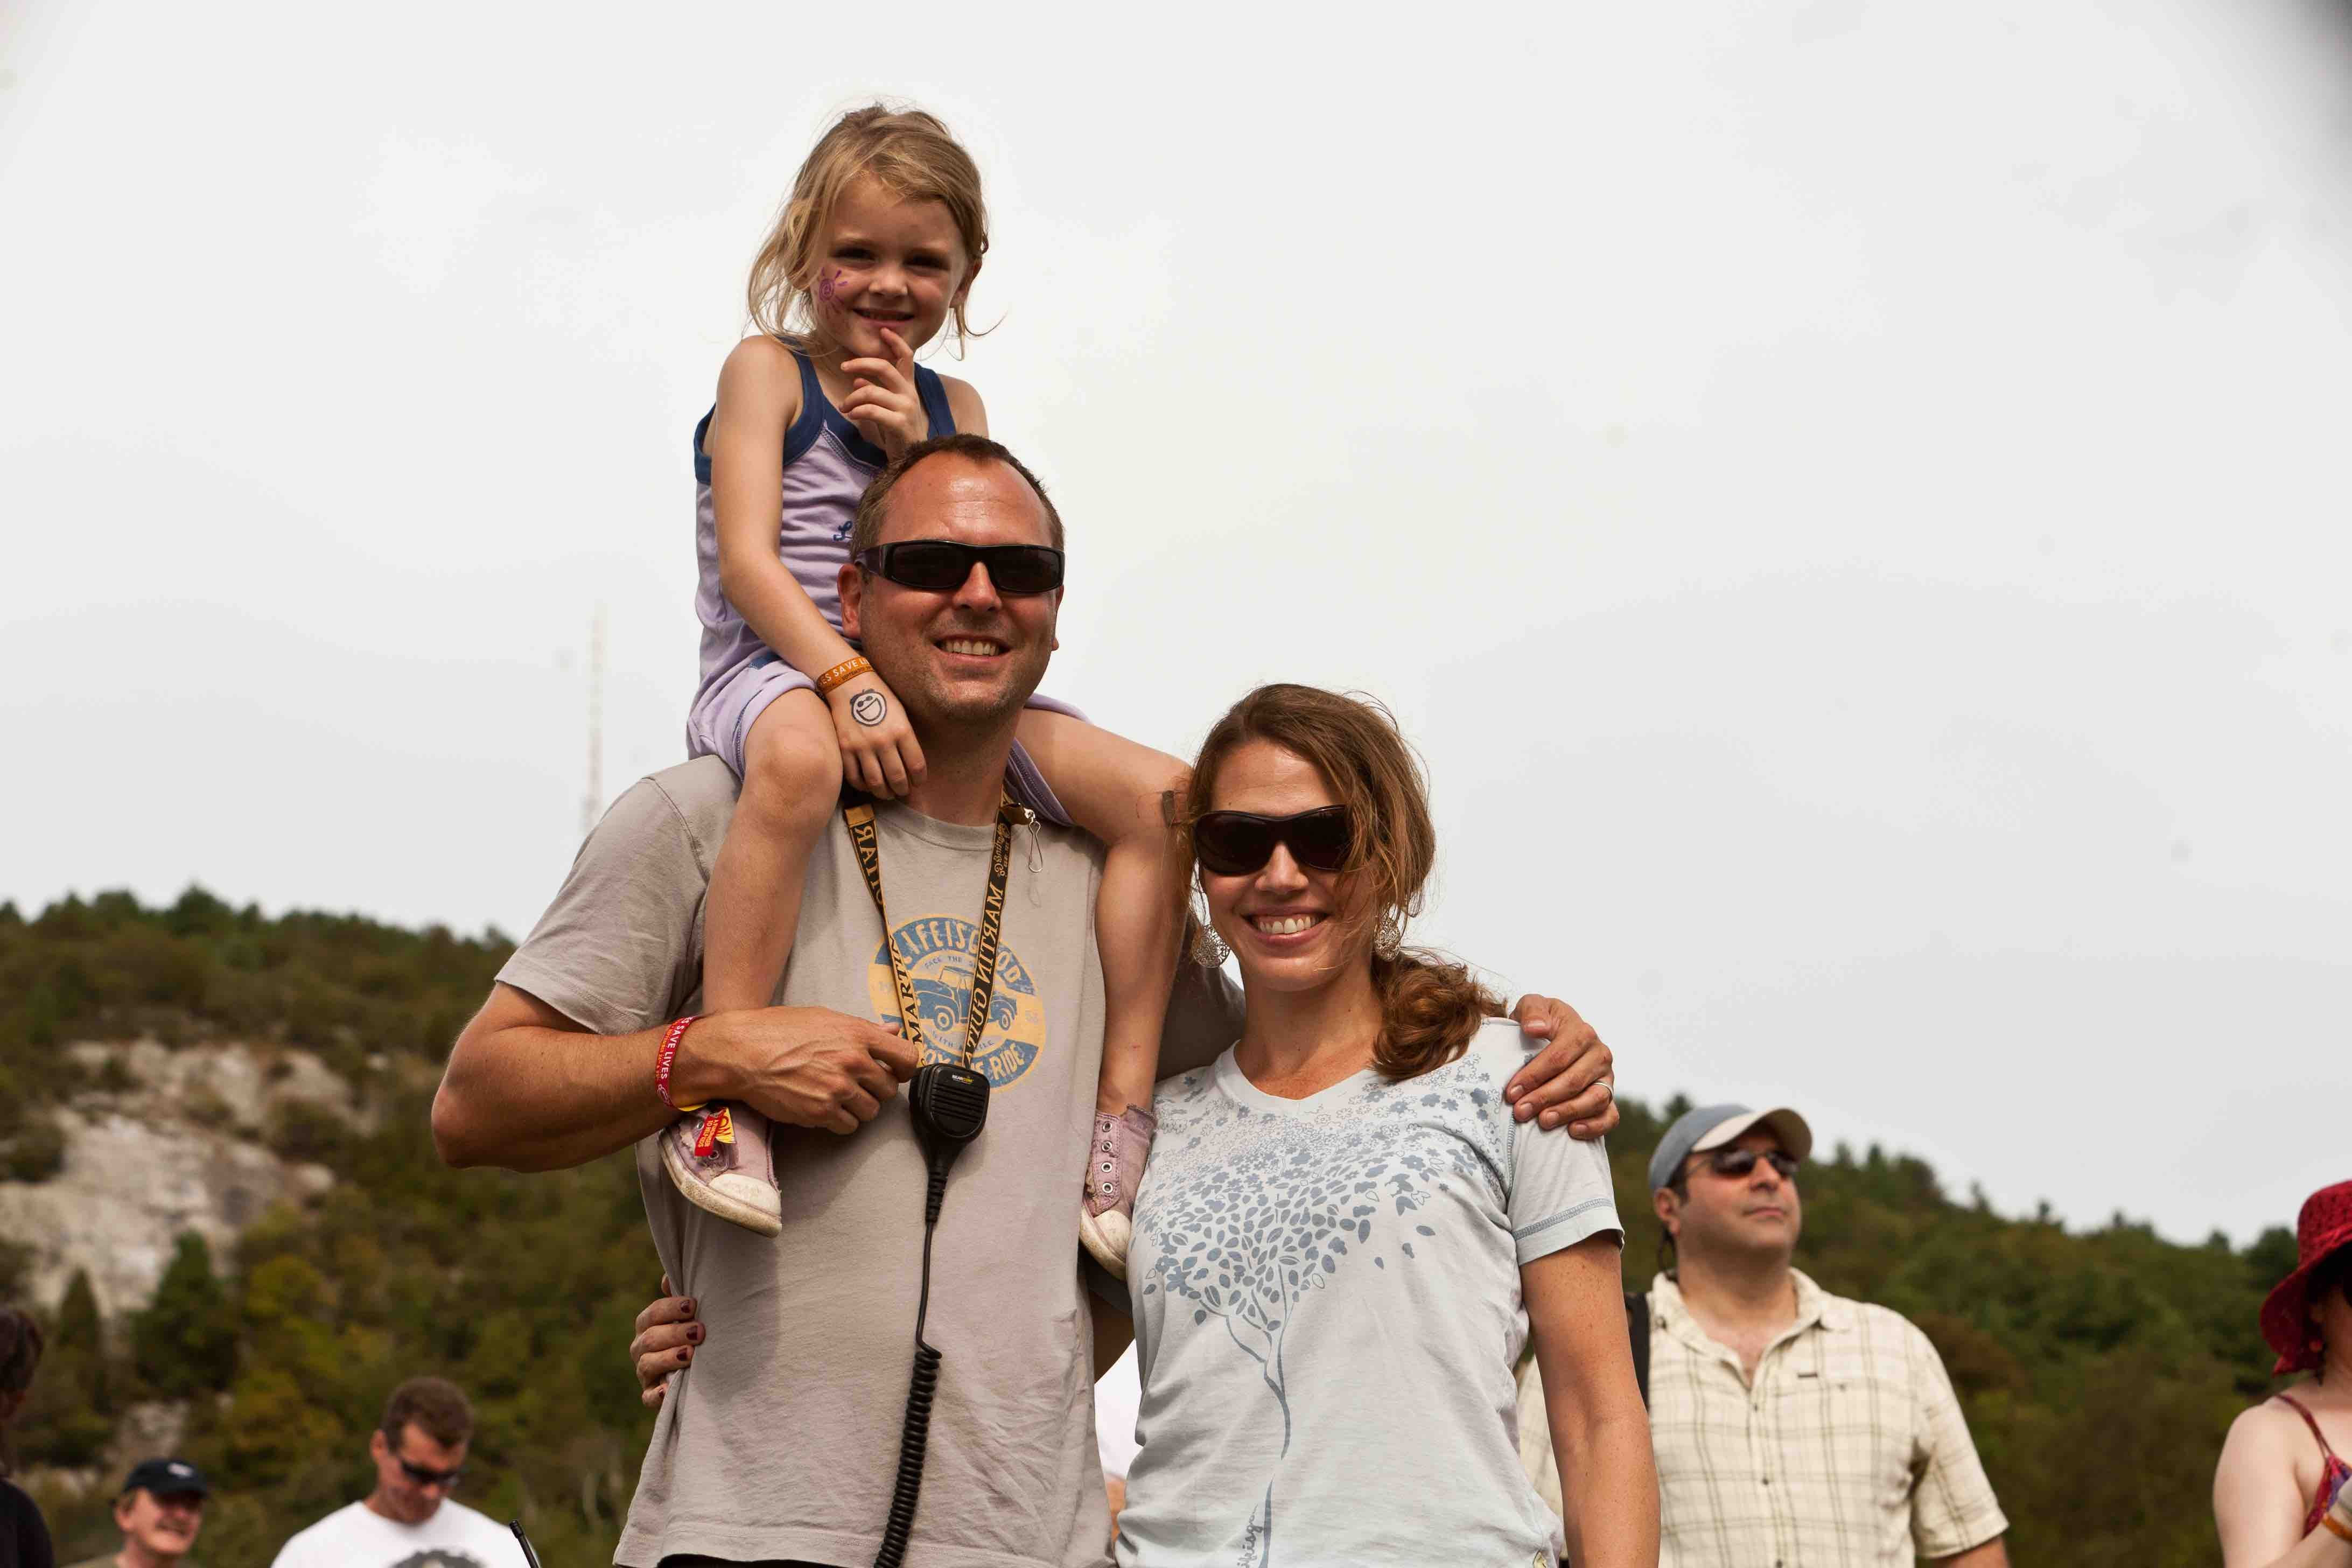 James Macdonald and family at Prowse Farm.